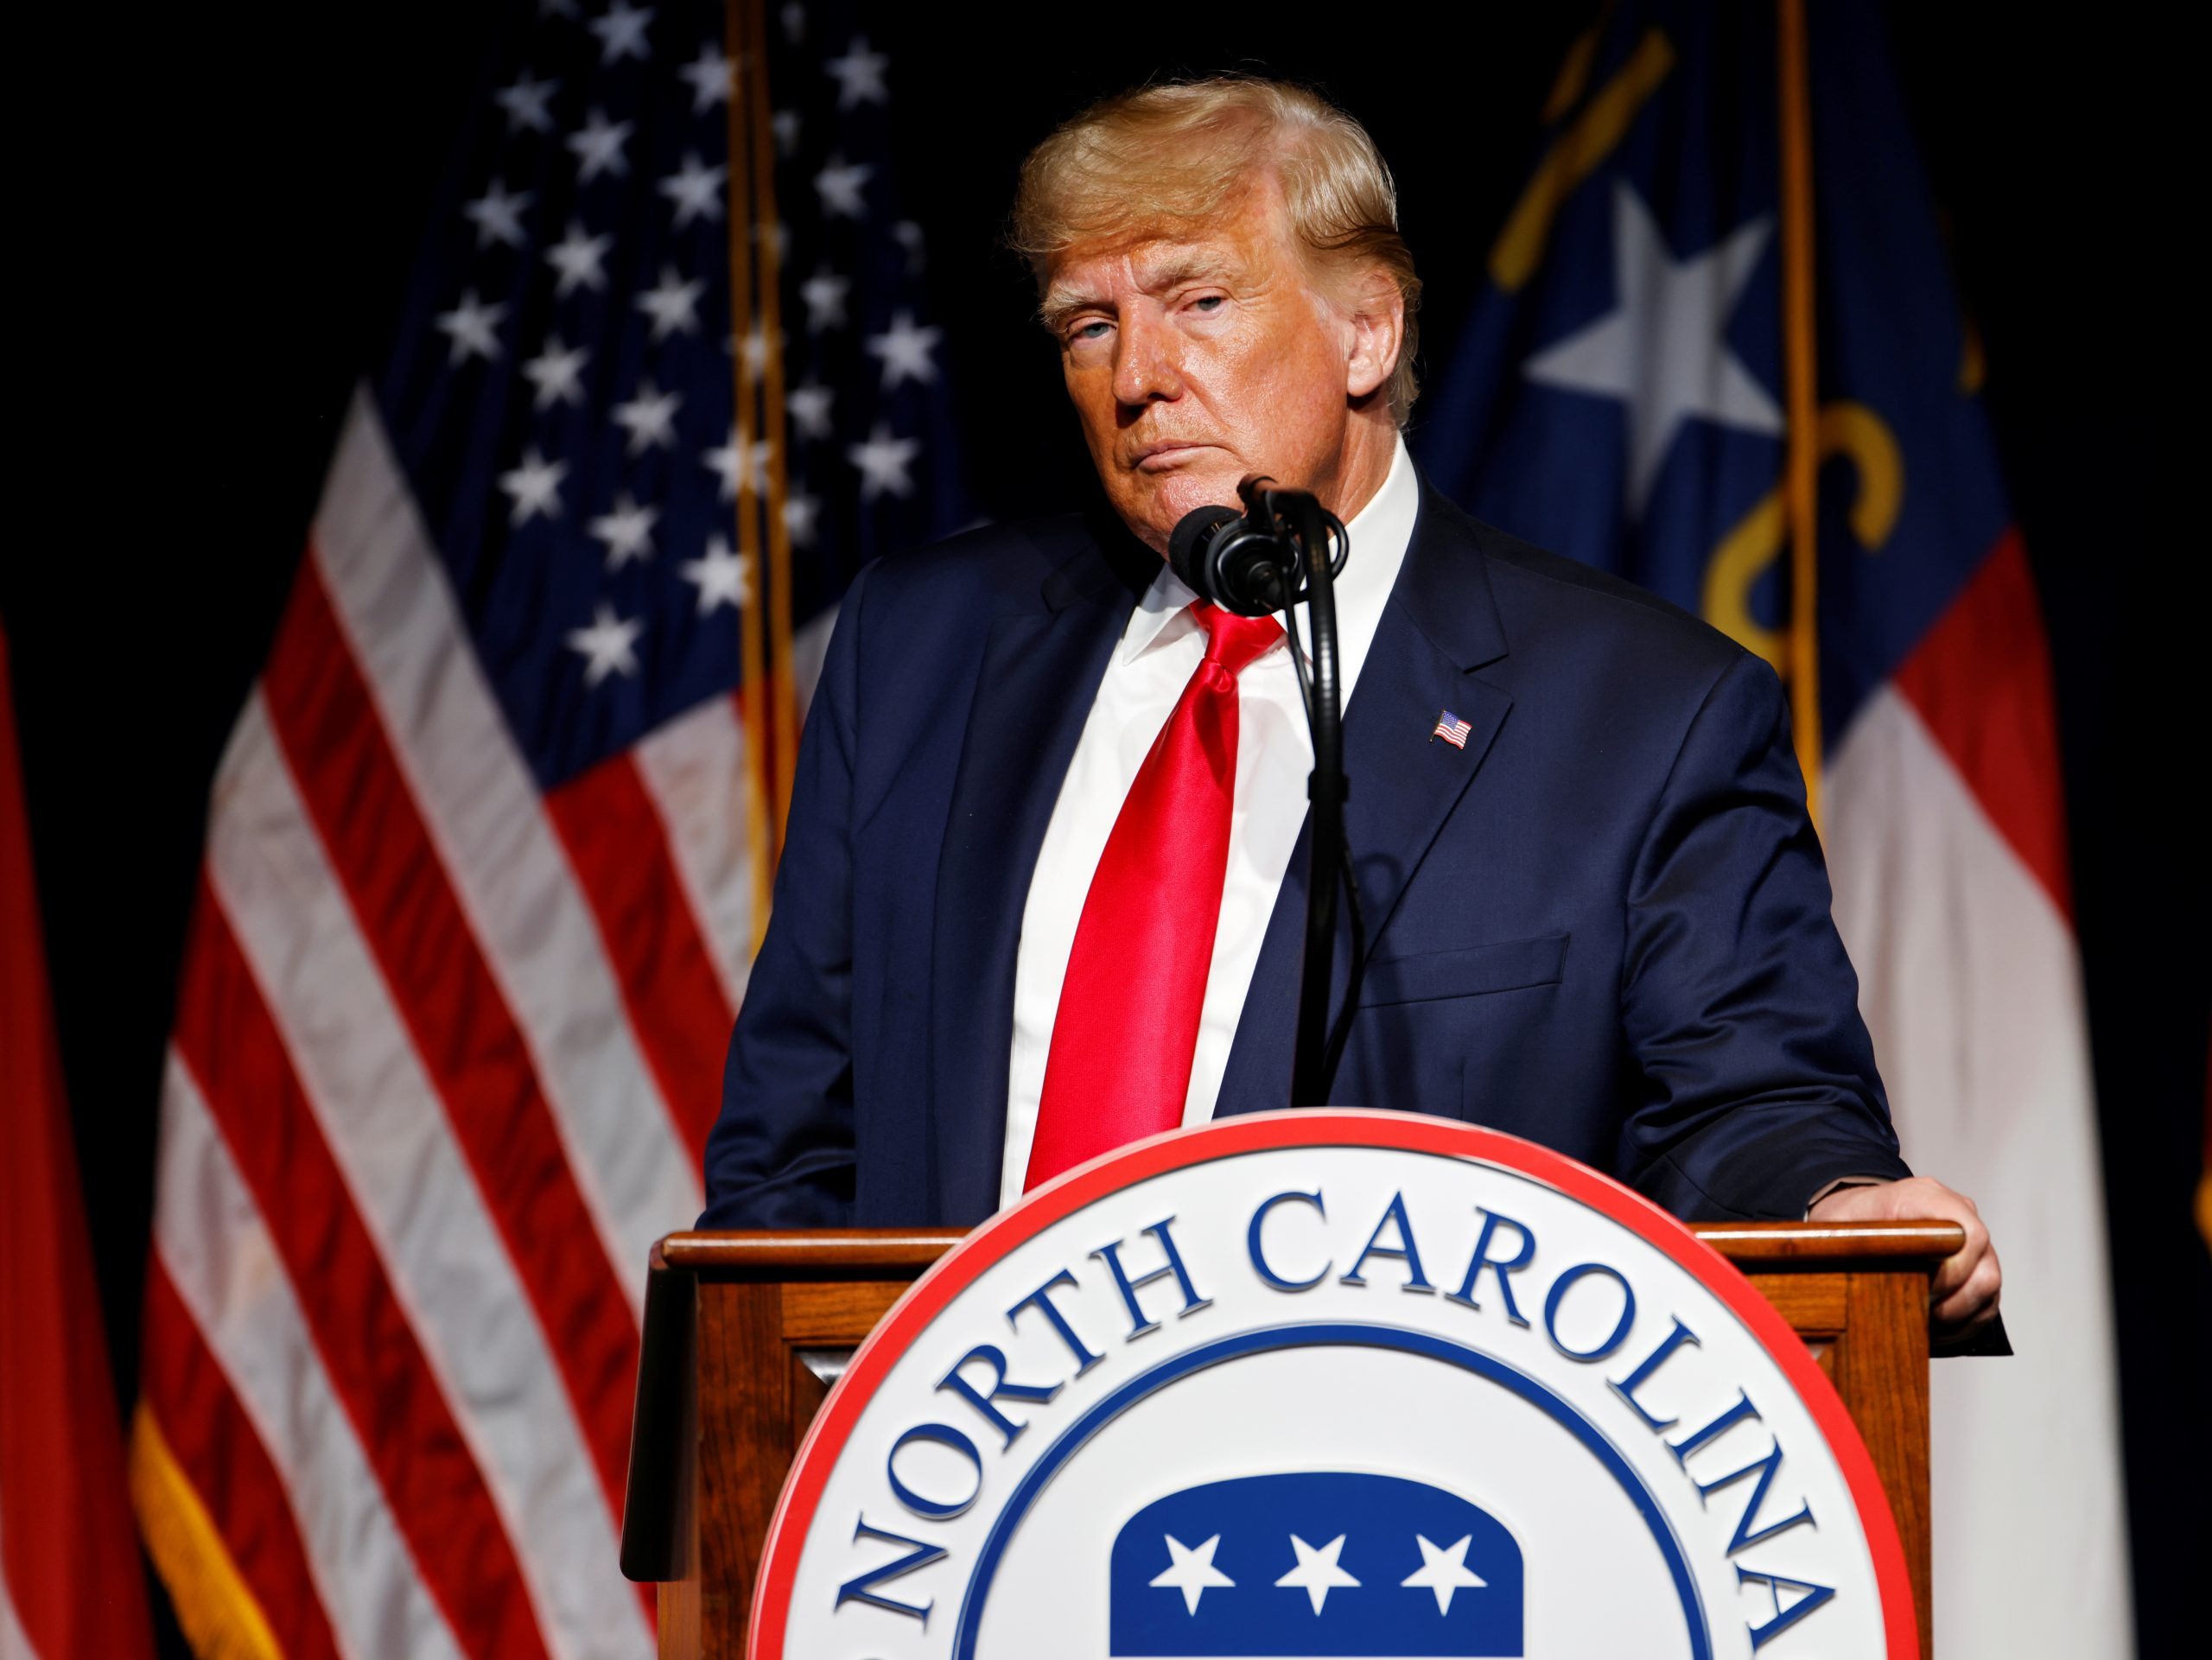 FILE PHOTO: Former U.S. President Donald Trump pauses while speaking at the North Carolina GOP convention dinner in Greenville